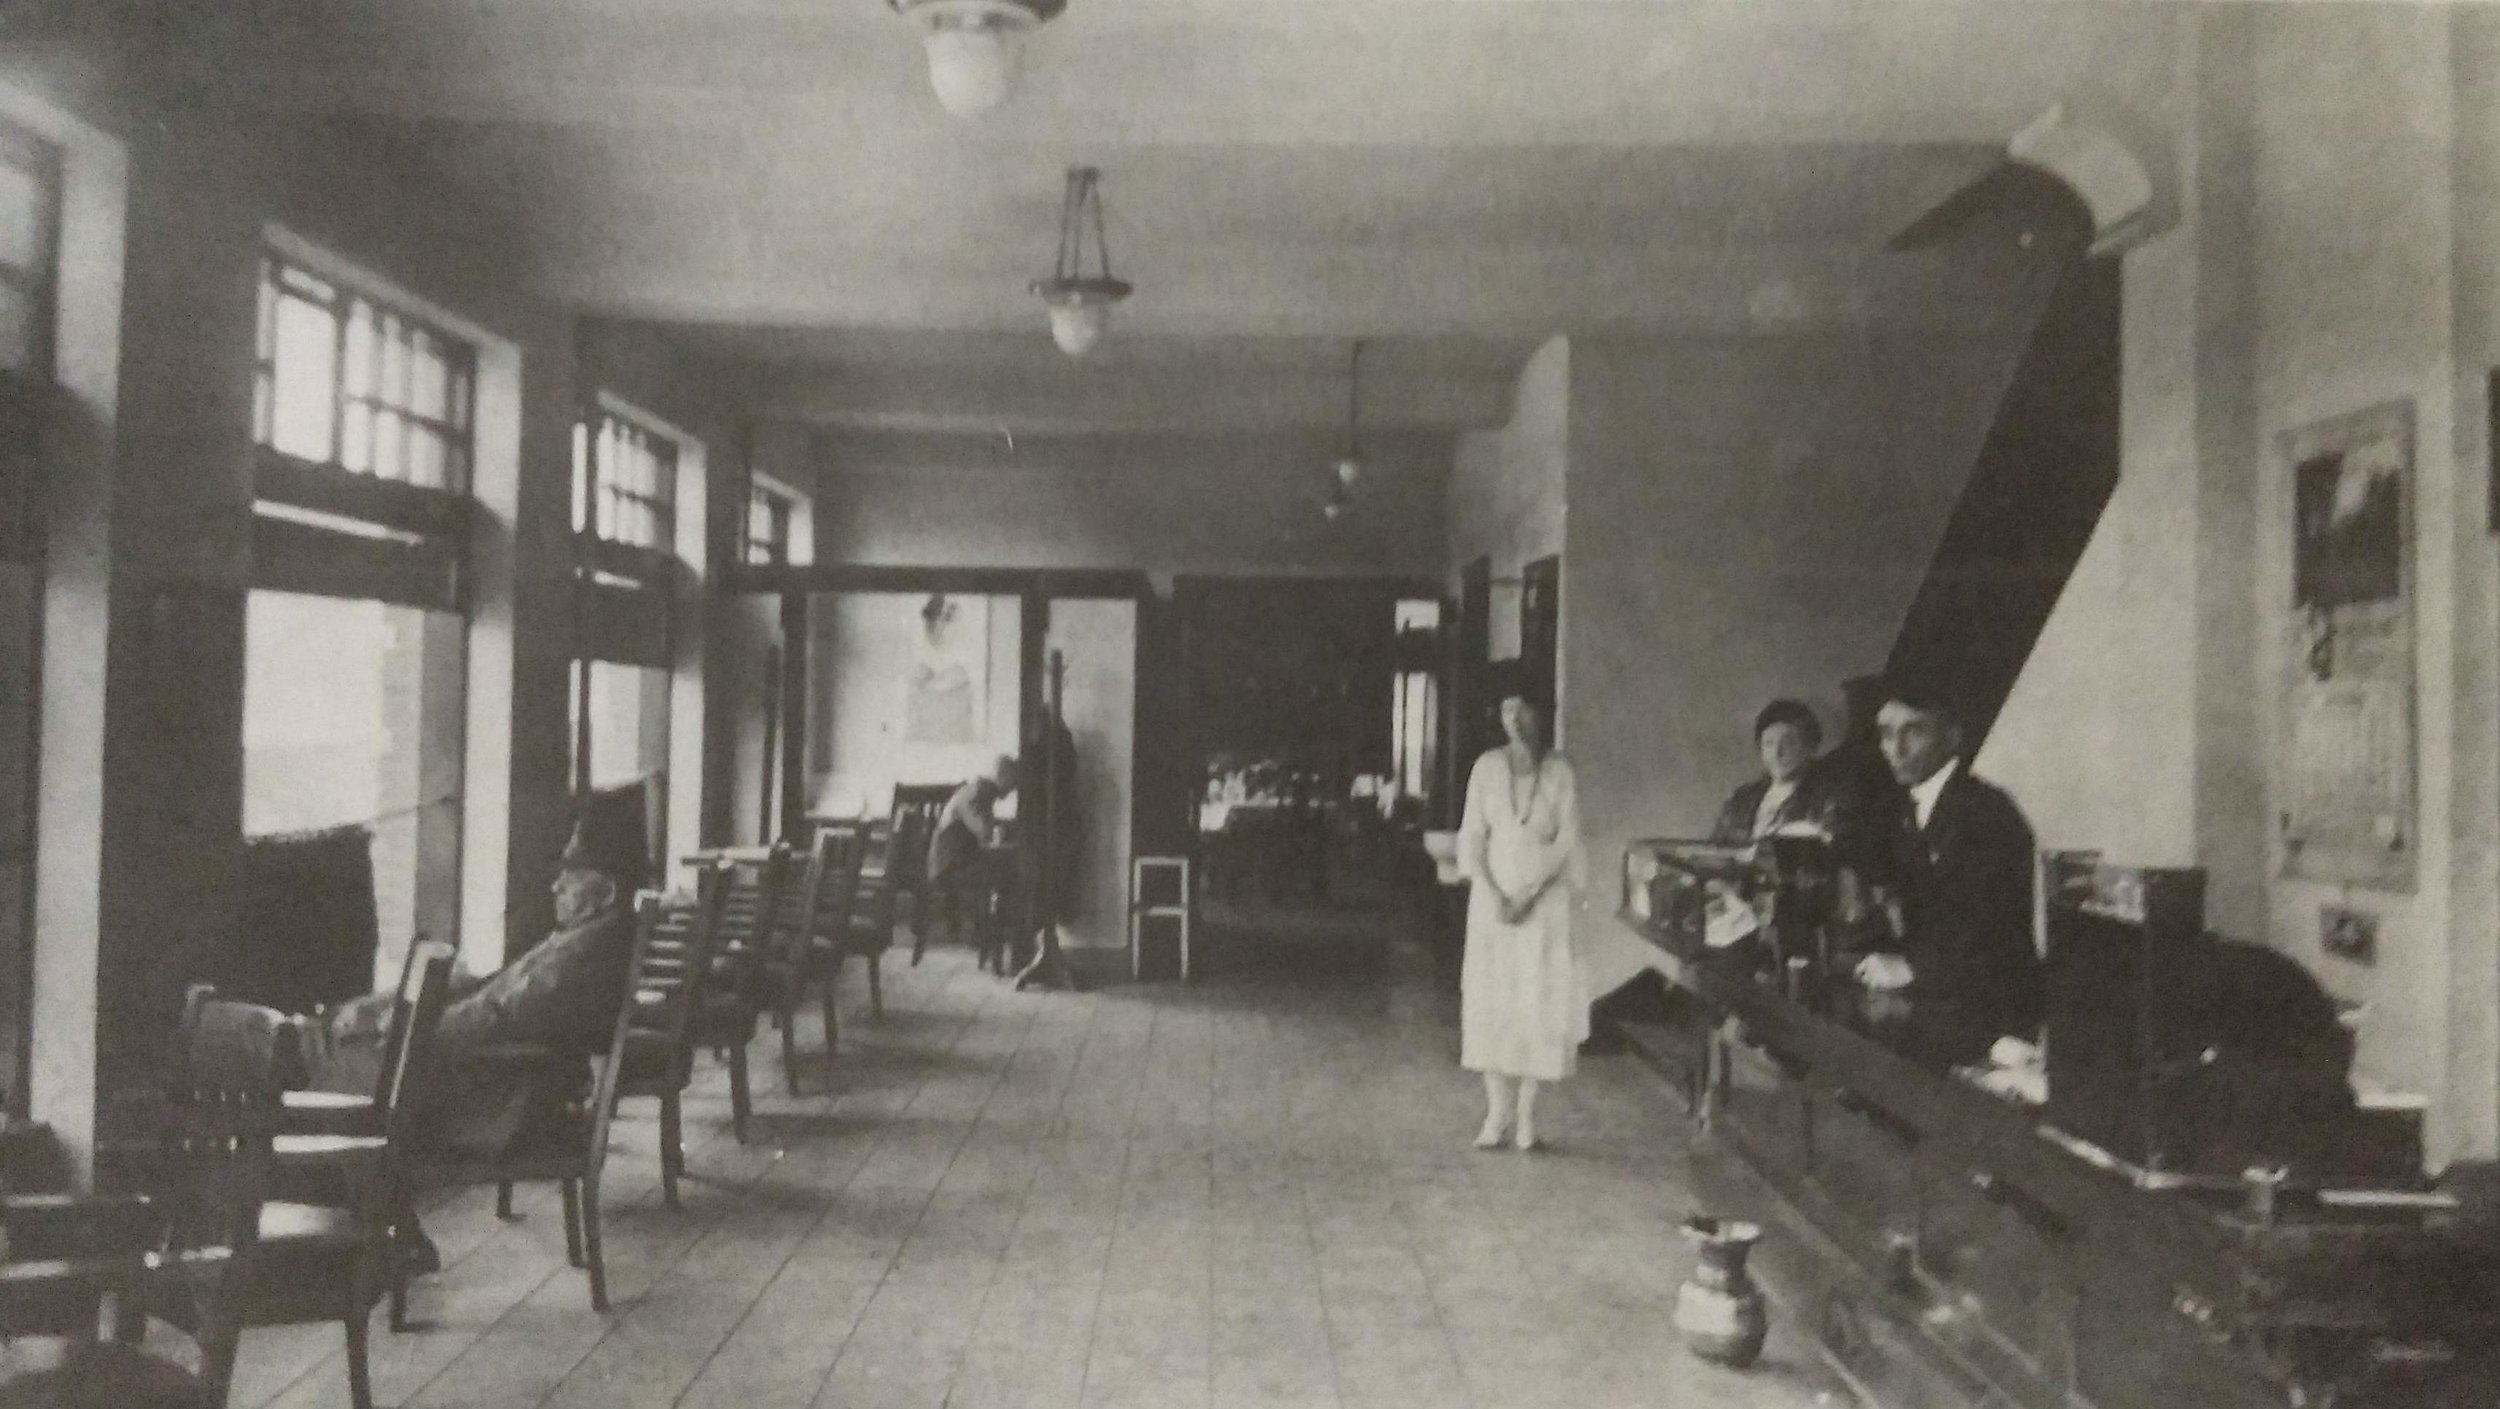 The Hotel Condon lobby circa 1920. The hotel was built in 1918 but most sources cite 1920 as the beginning of service.